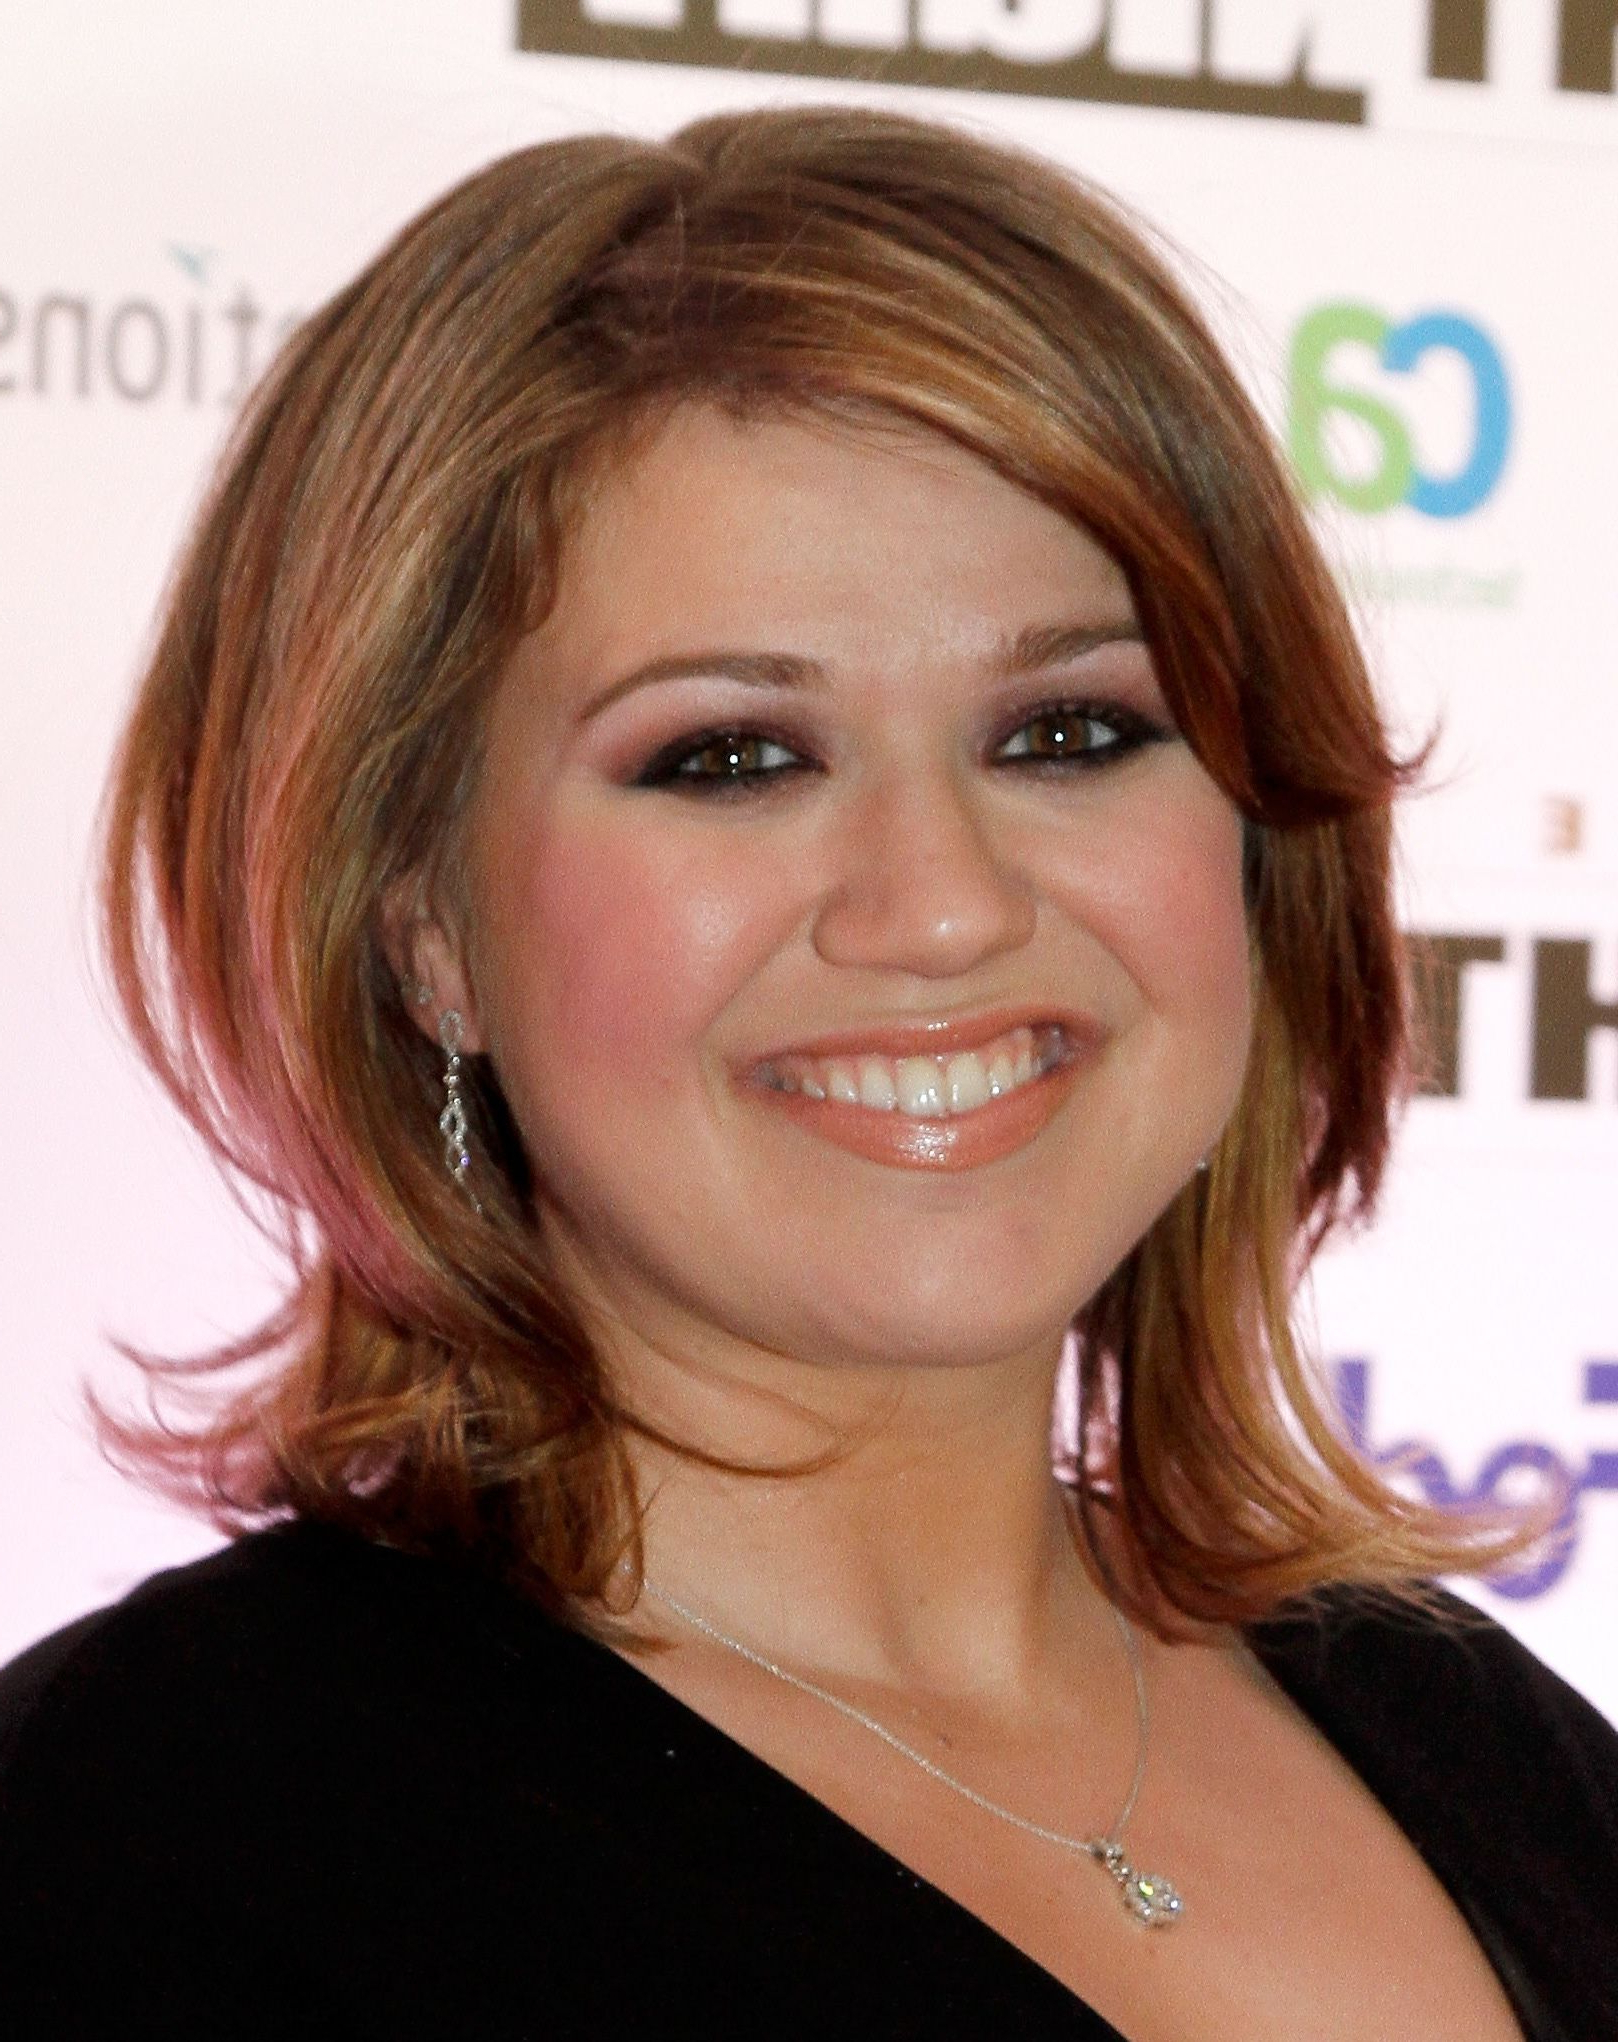 Flattering Celebrity Hairstyles For Round Faces   Hair Did With Regard To Short Haircuts For Big Round Face (View 6 of 25)